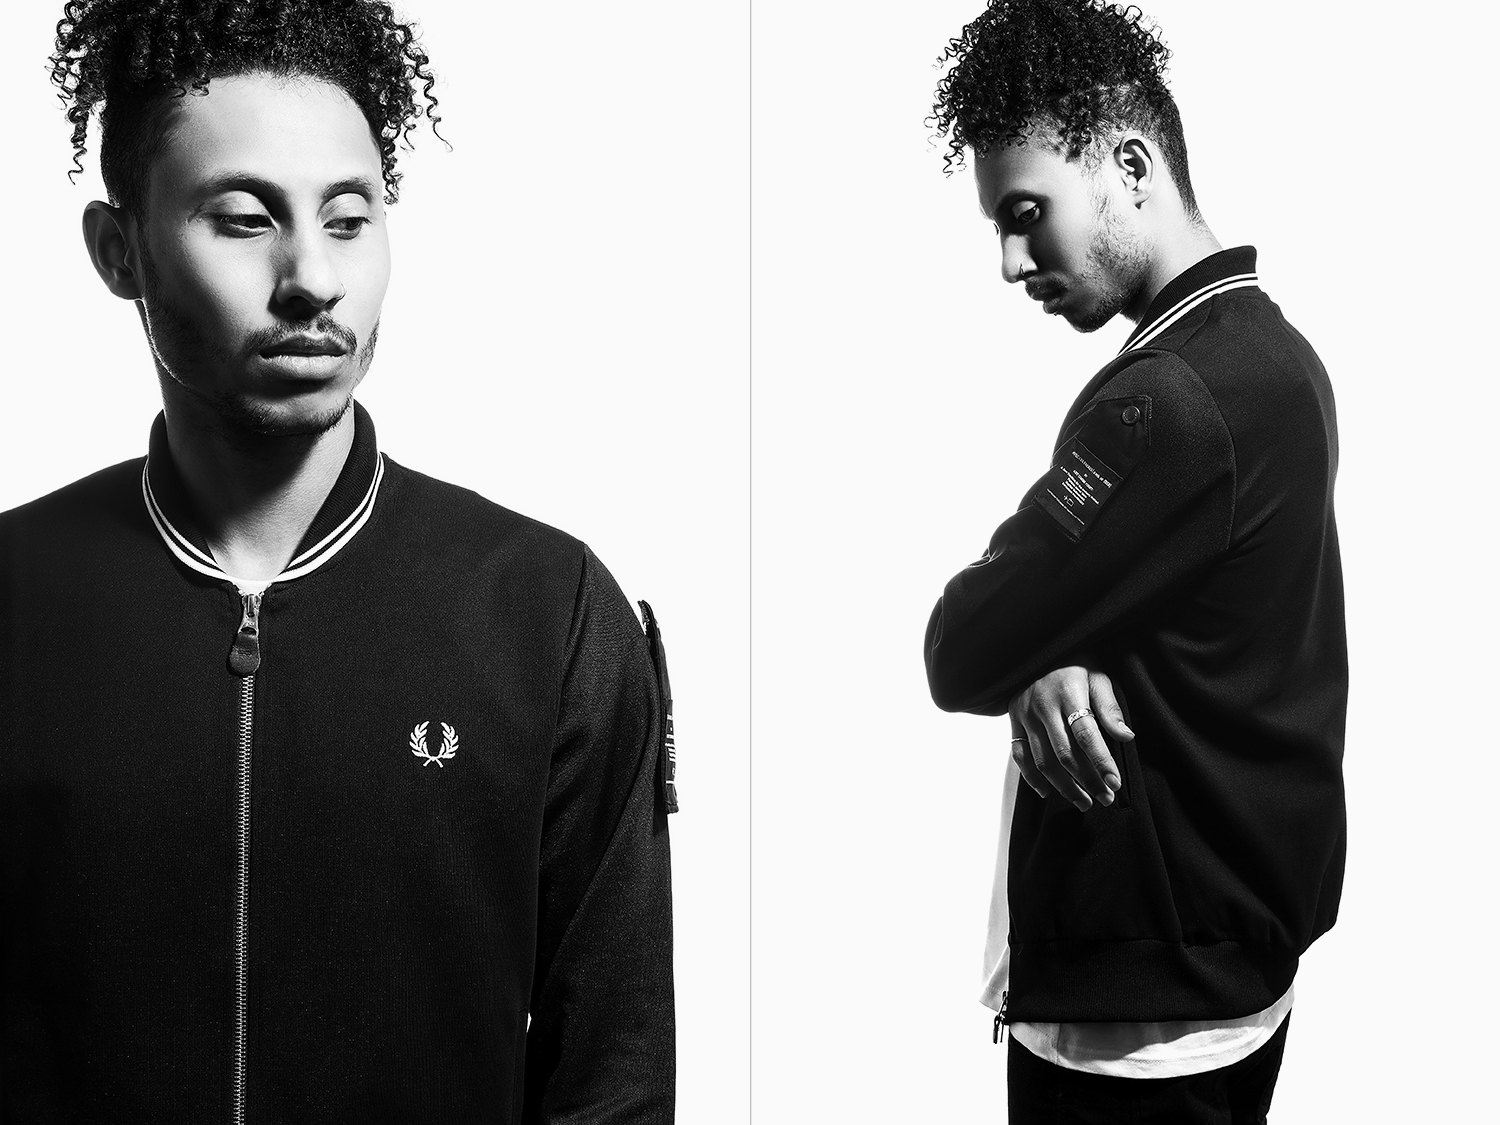 Photography by Kev Foster for Philip Browne_Fred Perry X Art Comes First